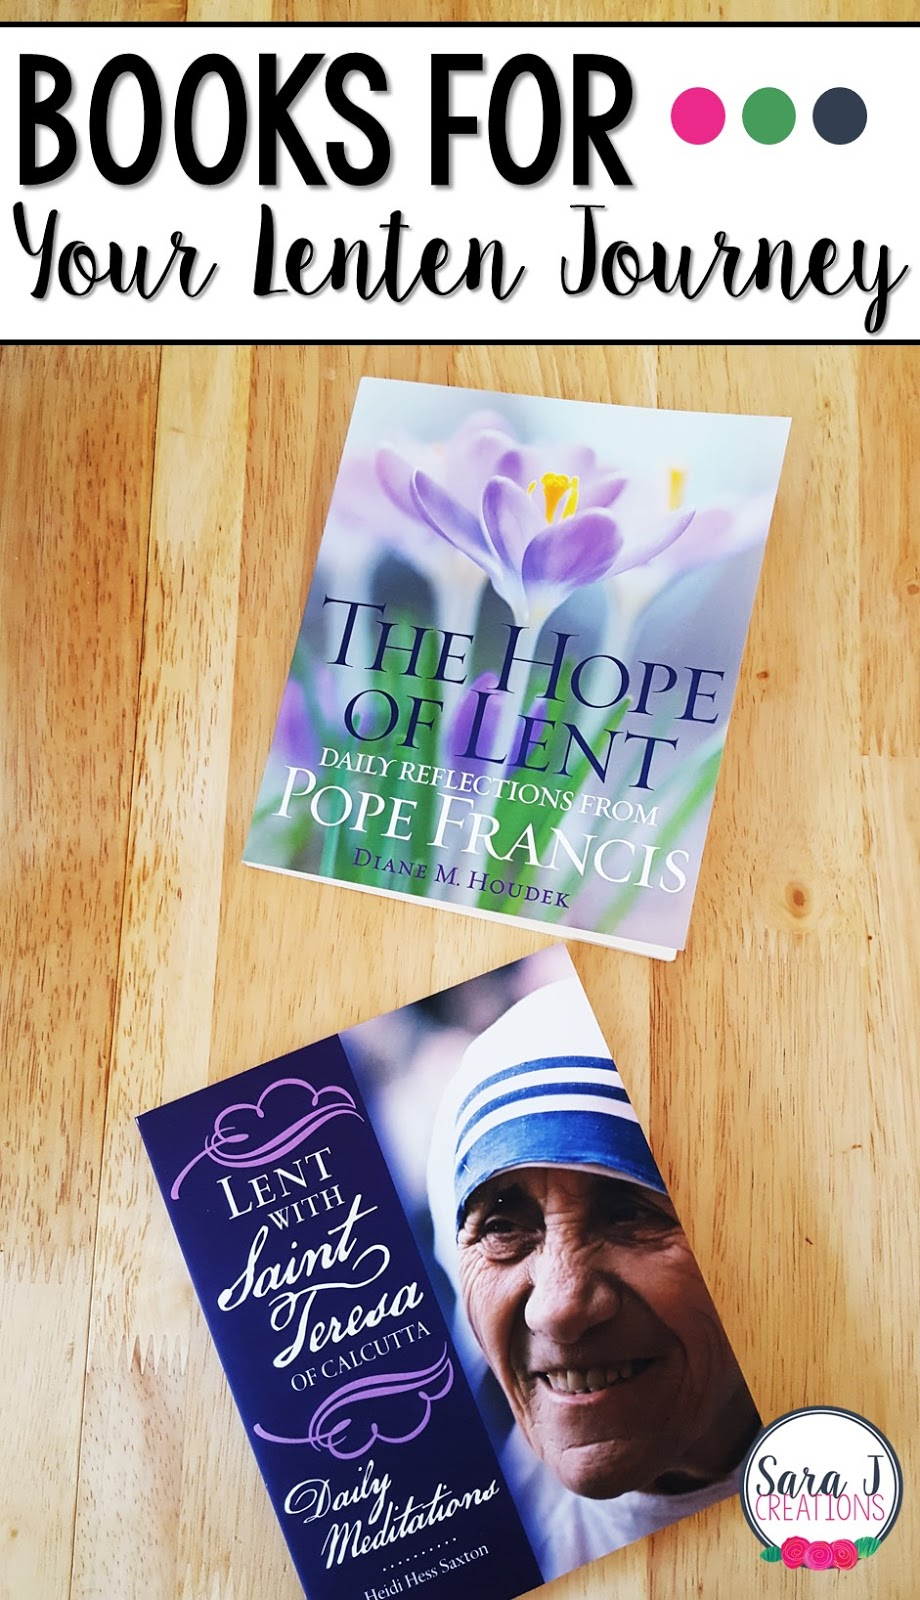 Two great books to help with your prayer life during Lent. Focused on the life and teachings of Mother Teresa and Pope Francis, this is a great read for Catholics preparing for Easter.